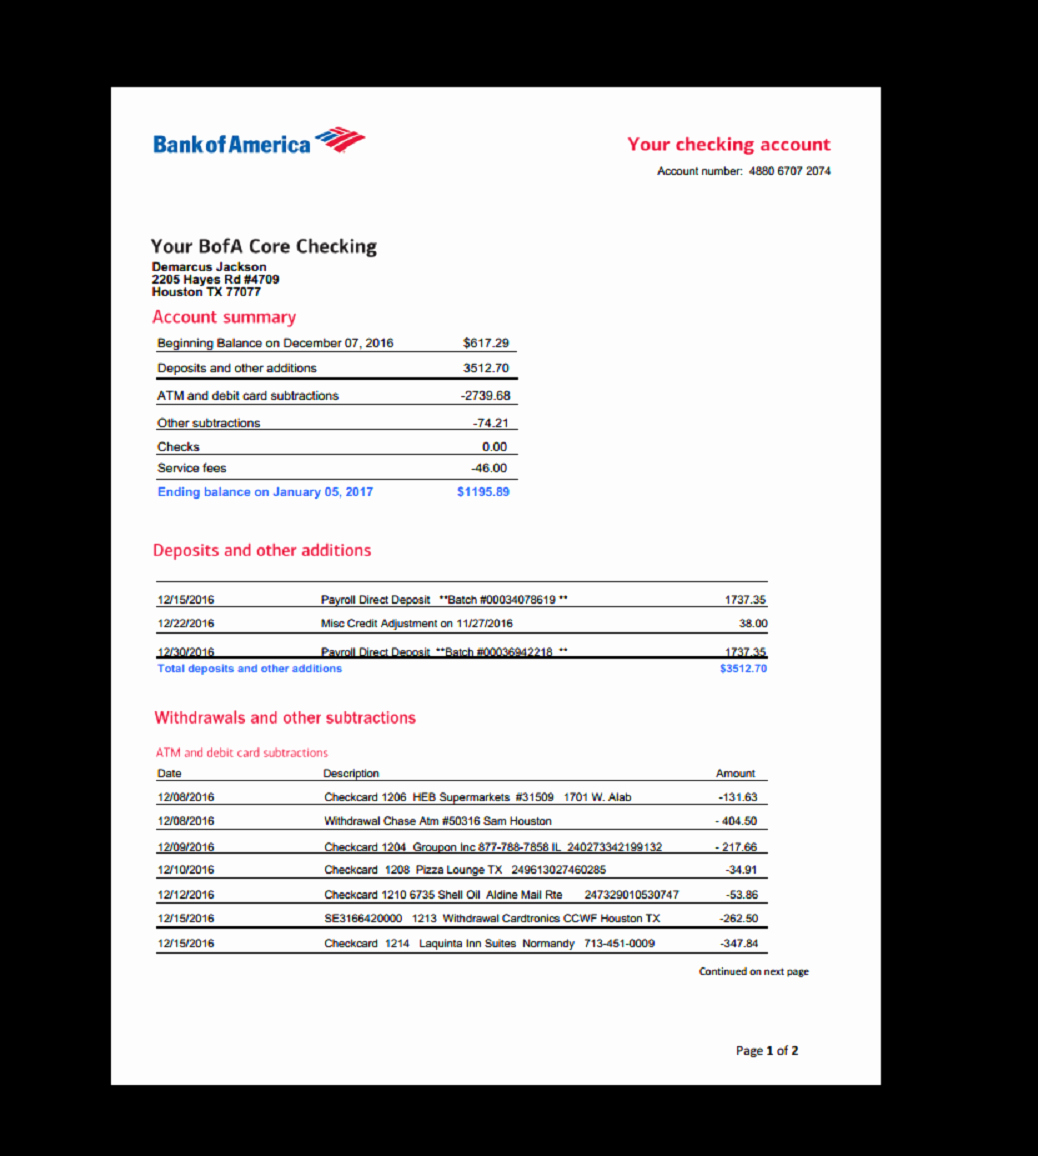 Free Fake Bank Statements Templates Unique Bank Statement Bank America Template In E Earnings